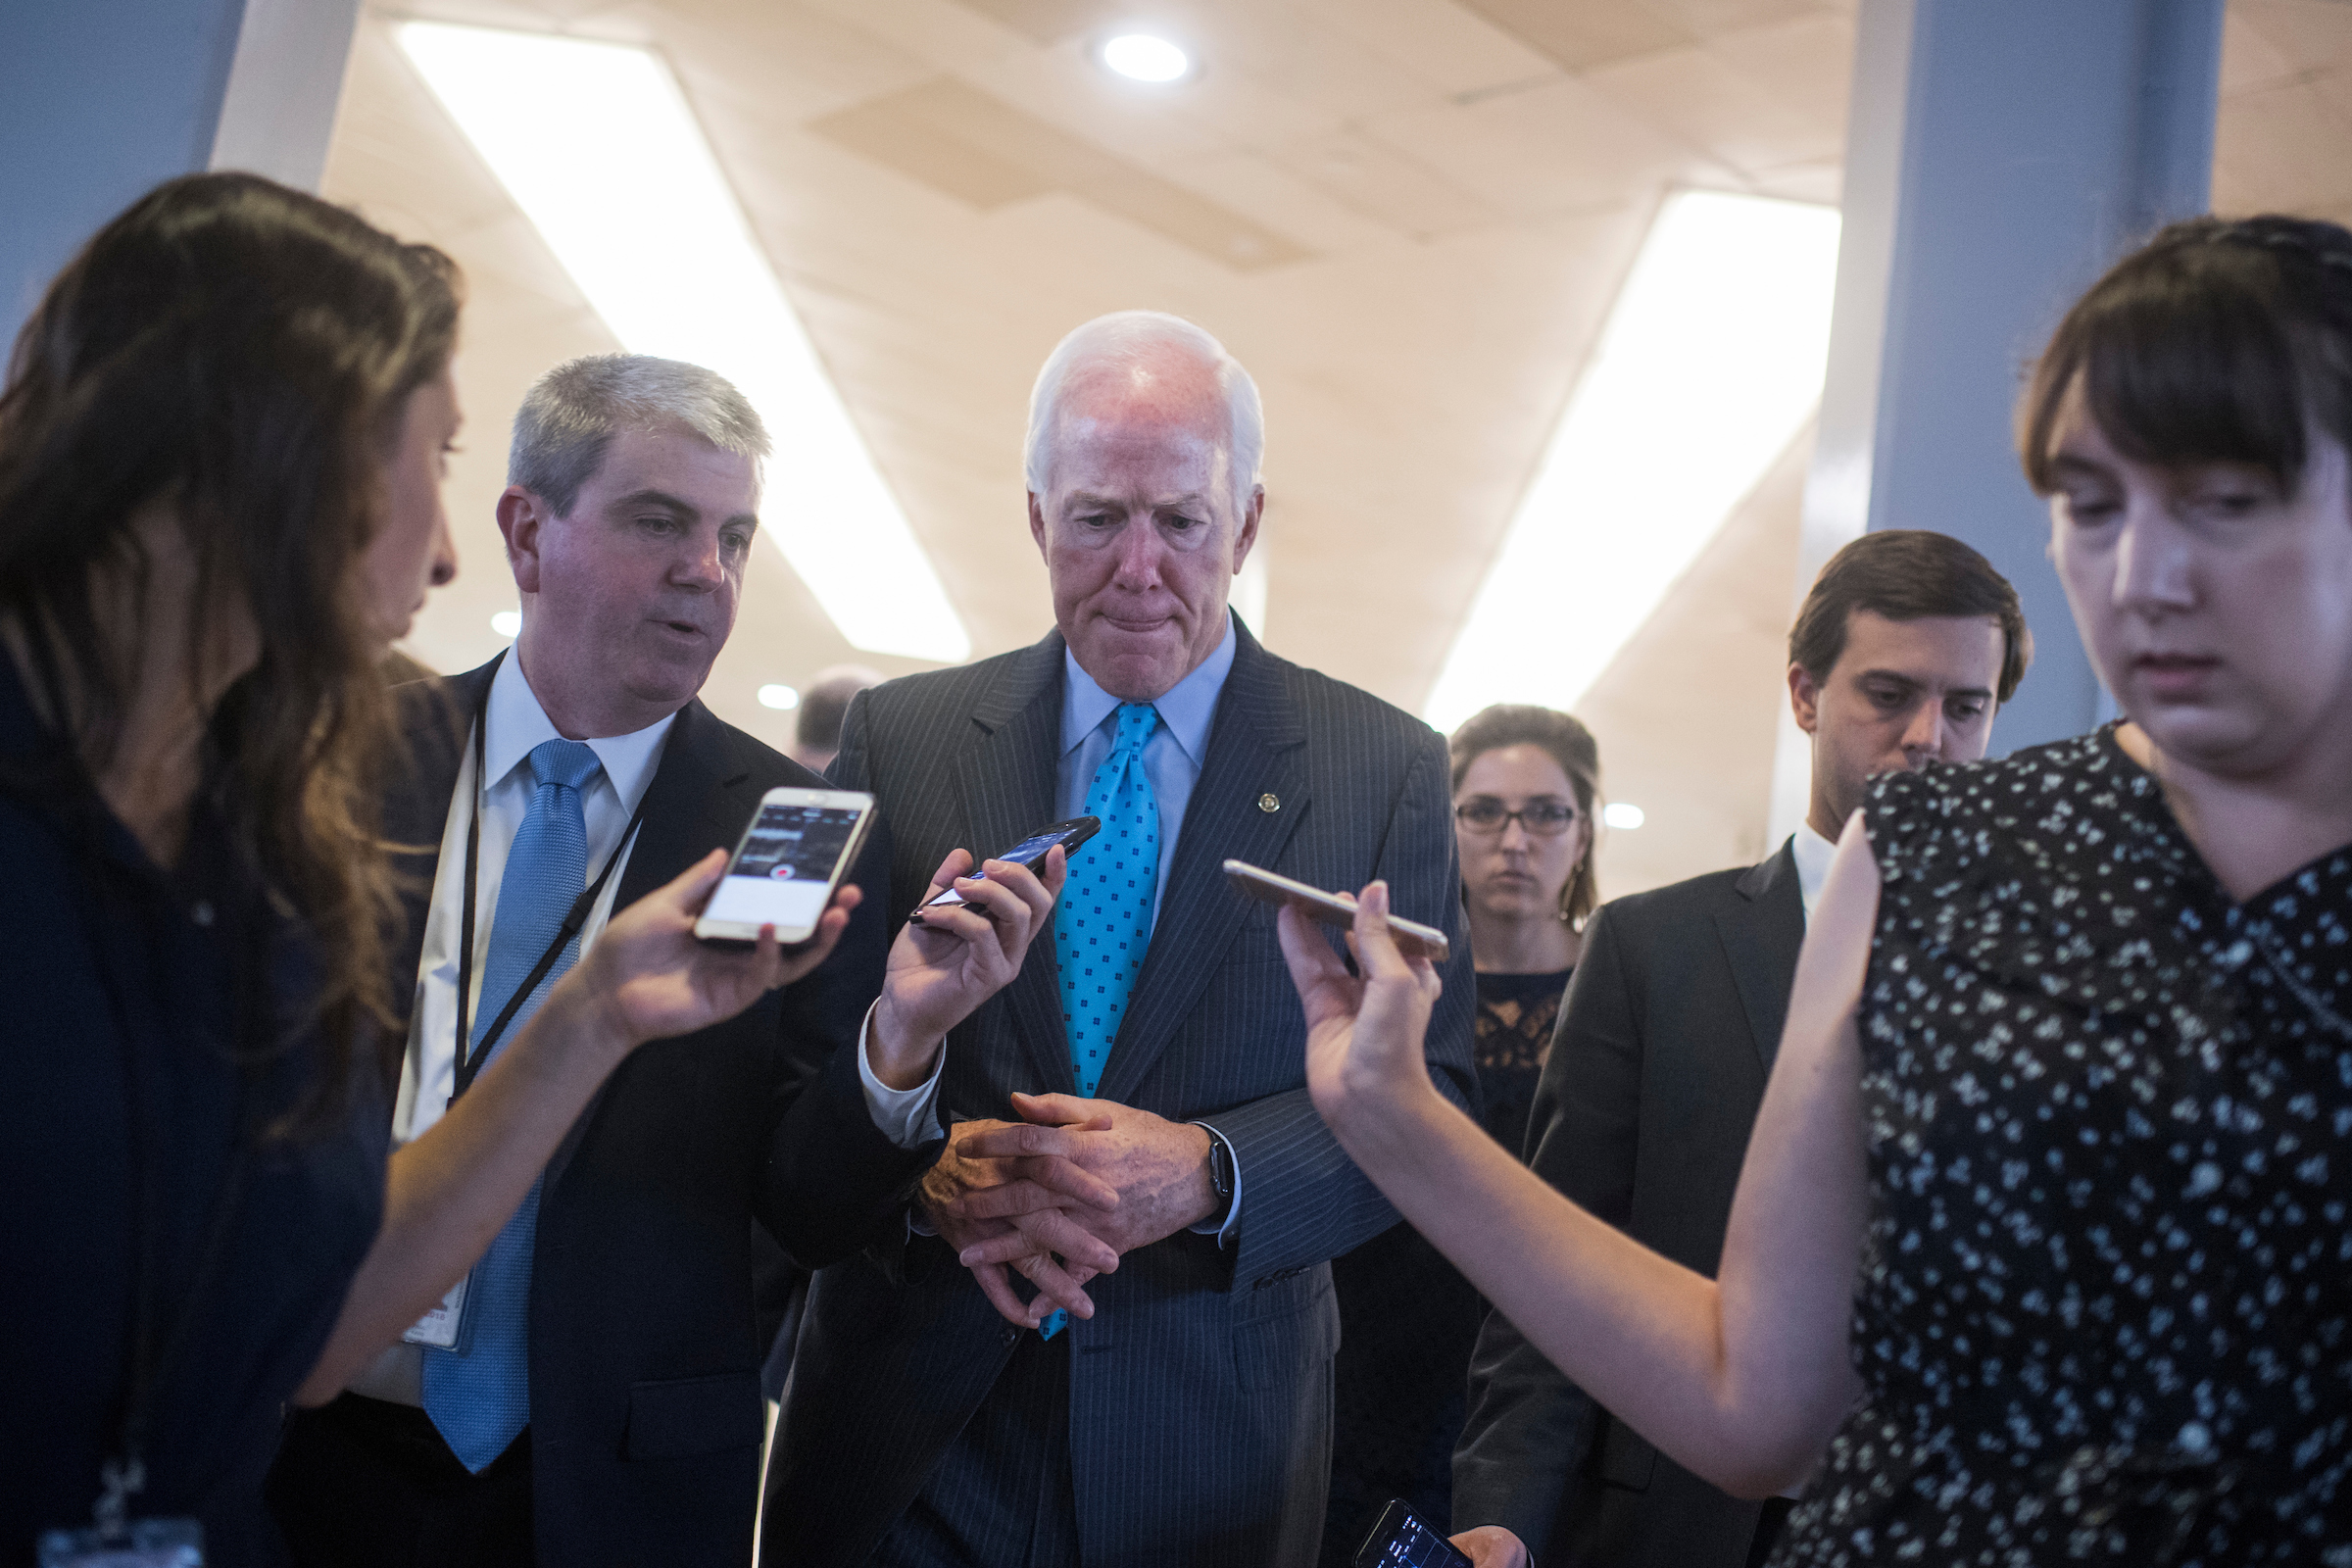 UNITED STATES - SEPTEMBER 26: Senate Majority Whip John Cornyn, R-Texas, talks with reporters after Majority Leader Mitch McConnell, R-Ky., announced the latest plan to repeal and replace the Affordable Care Act had been pulled on September 26, 2017. (Photo By Tom Williams/CQ Roll Call)